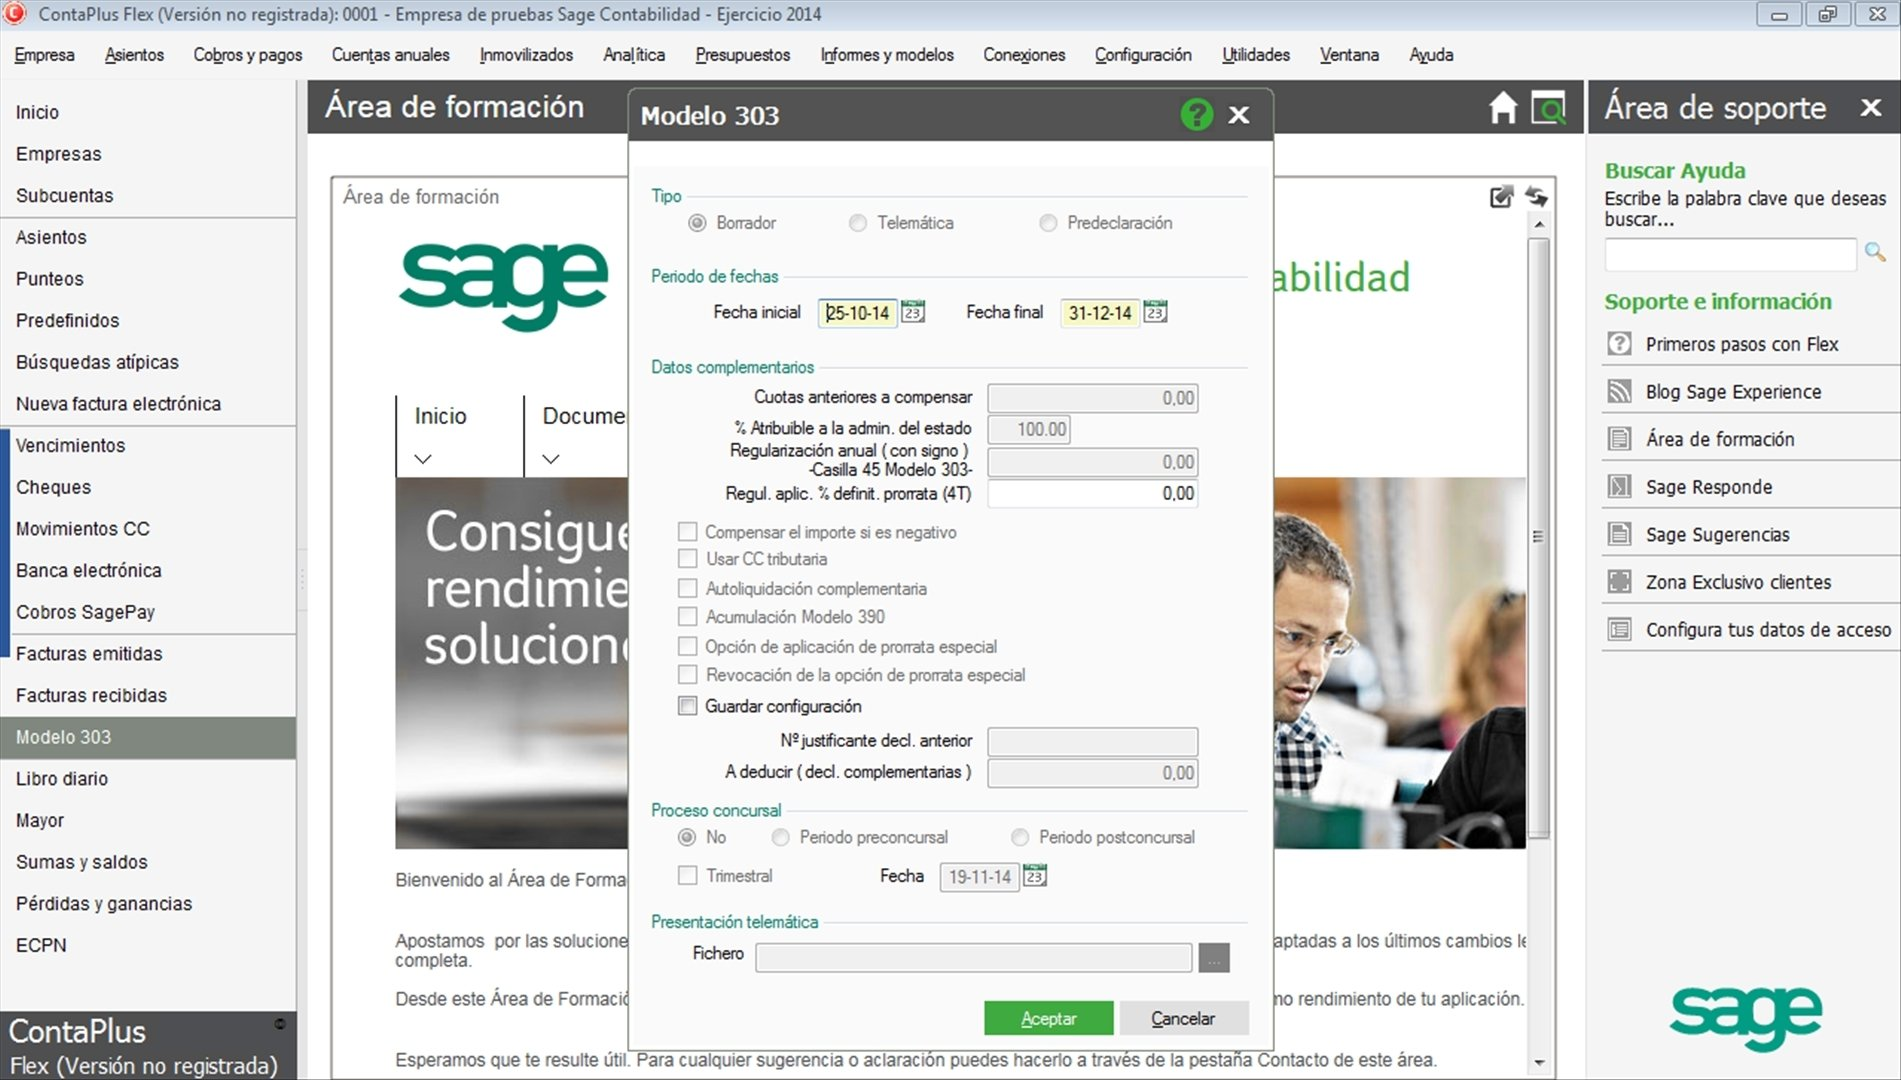 sp panel de gestion contaplus gratis